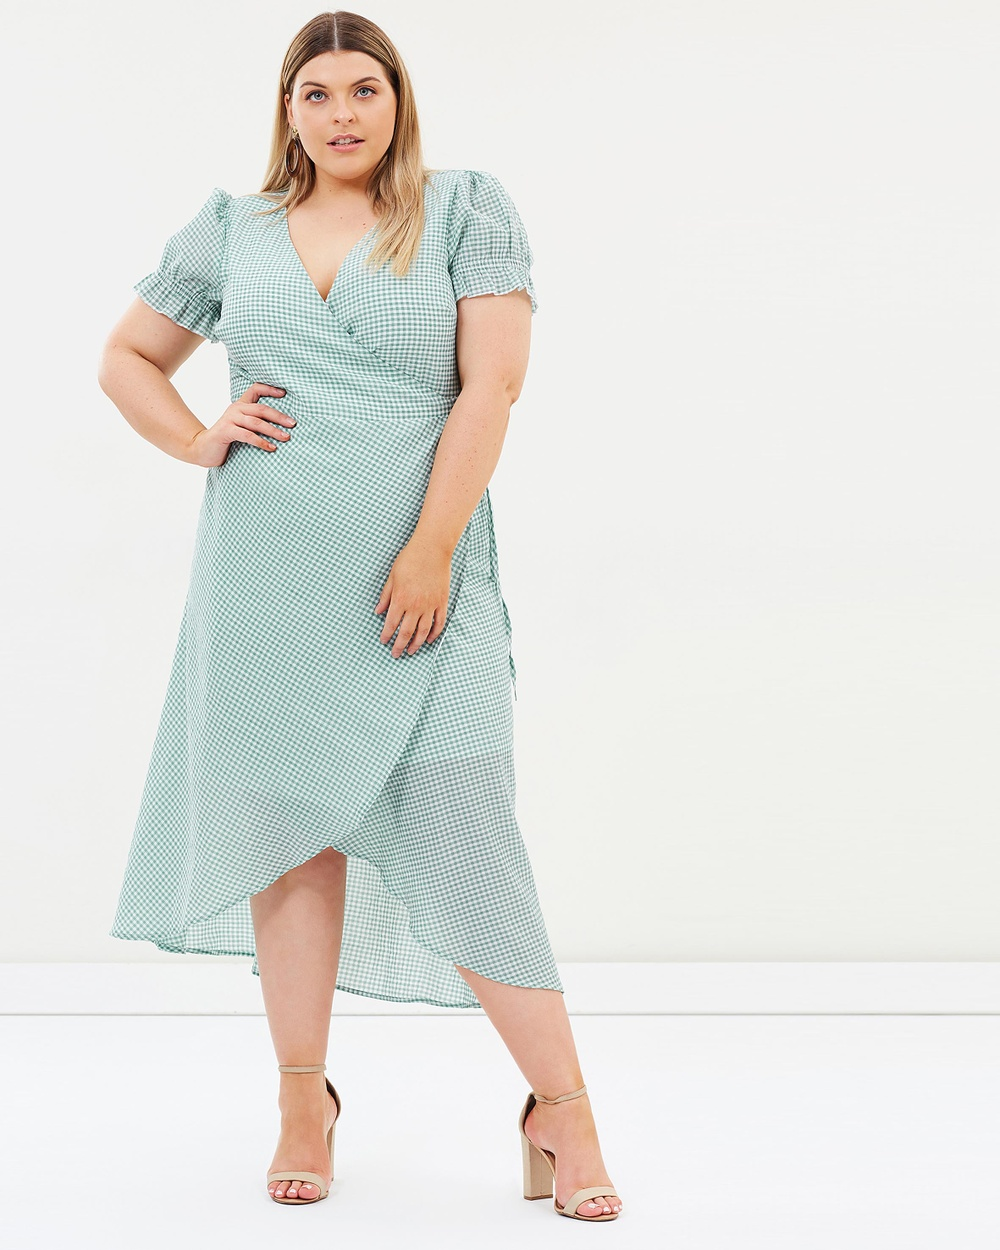 Atmos & Here Curvy ICONIC EXCLUSIVE Alabama Wrap Dress Printed Dresses Green Gingham ICONIC EXCLUSIVE Alabama Wrap Dress